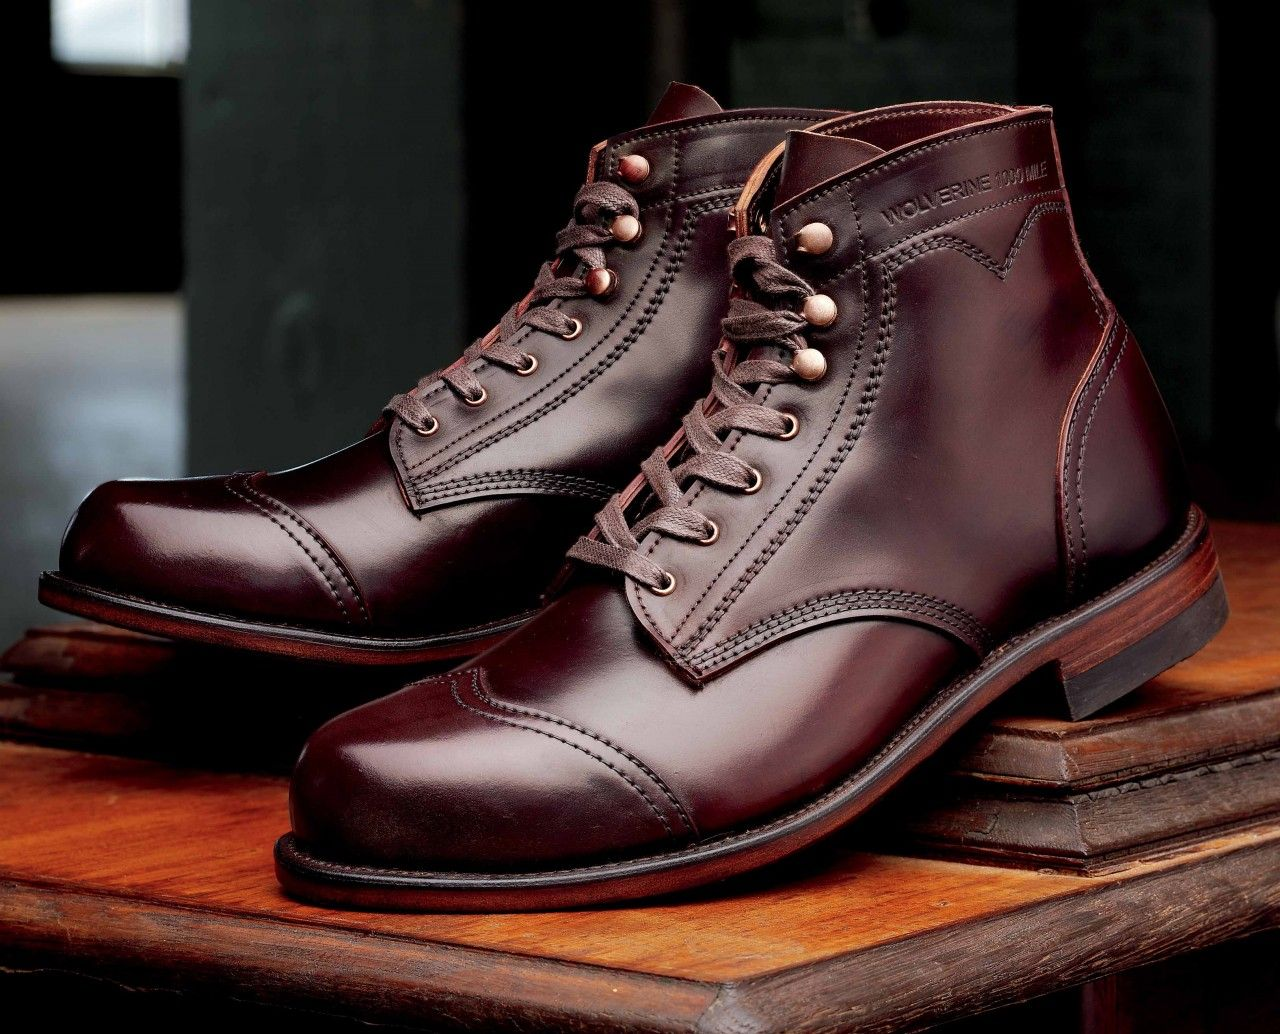 35e3acd23a4 Wolverine 1000 Mile Boot - Shell Cordovan - Limited Edition